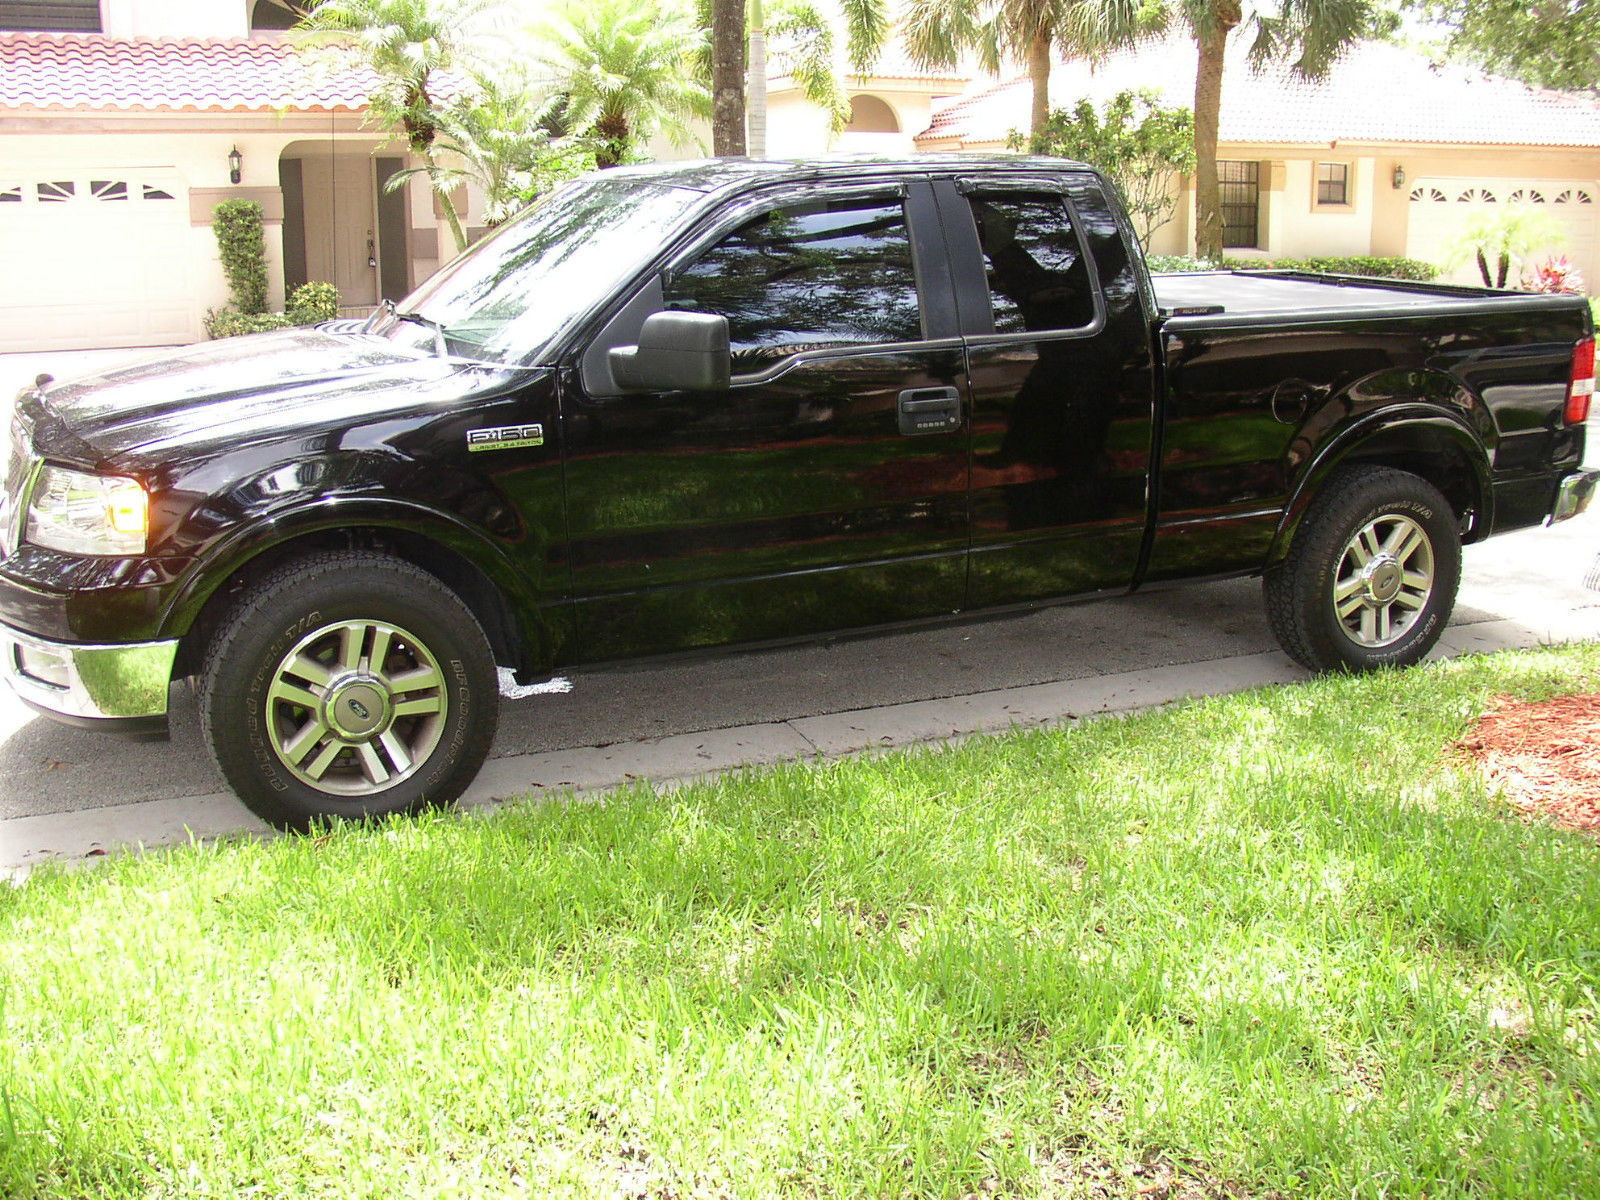 Offering my original two owner 2005 ford f150 lariat extended cab 6 5 bed ford bed liner and roll and lock steel toneau cover 5 4 motor always serviced